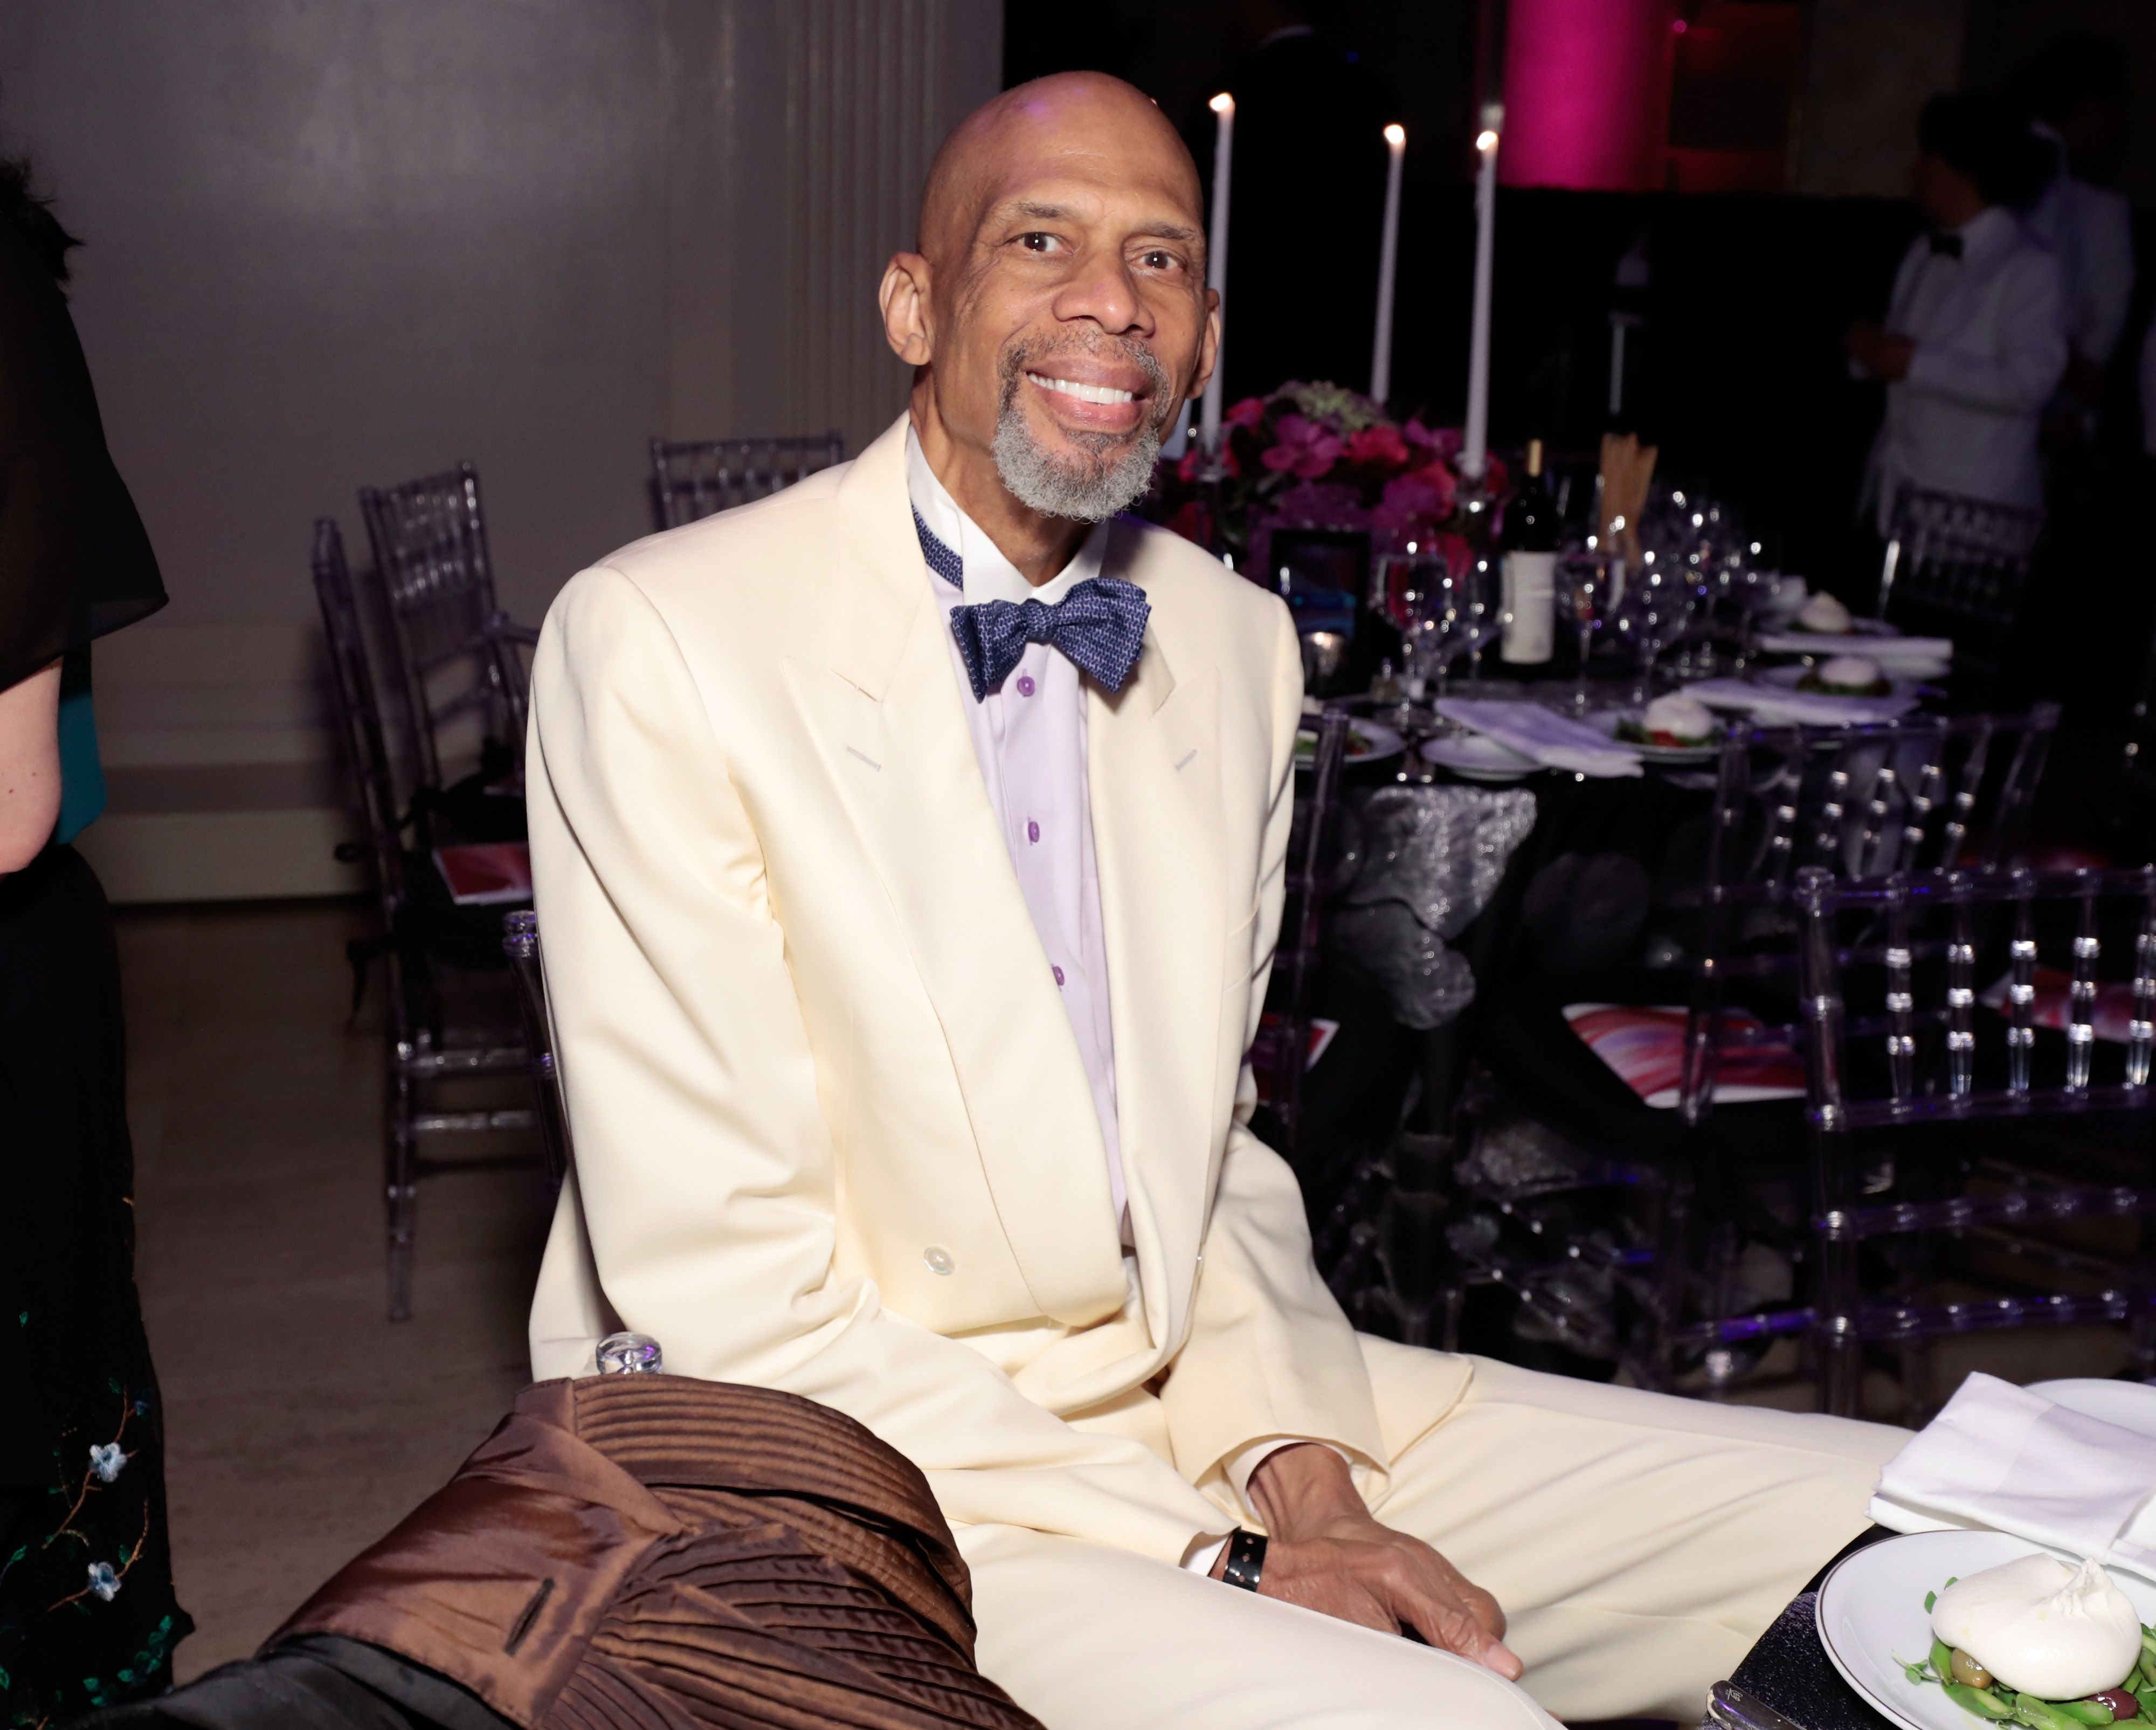 Kareem Abdul-Jabbar at Gabrielle's Angel Foundation's Angel Ball 2017 in New York City. | Source: Getty Images